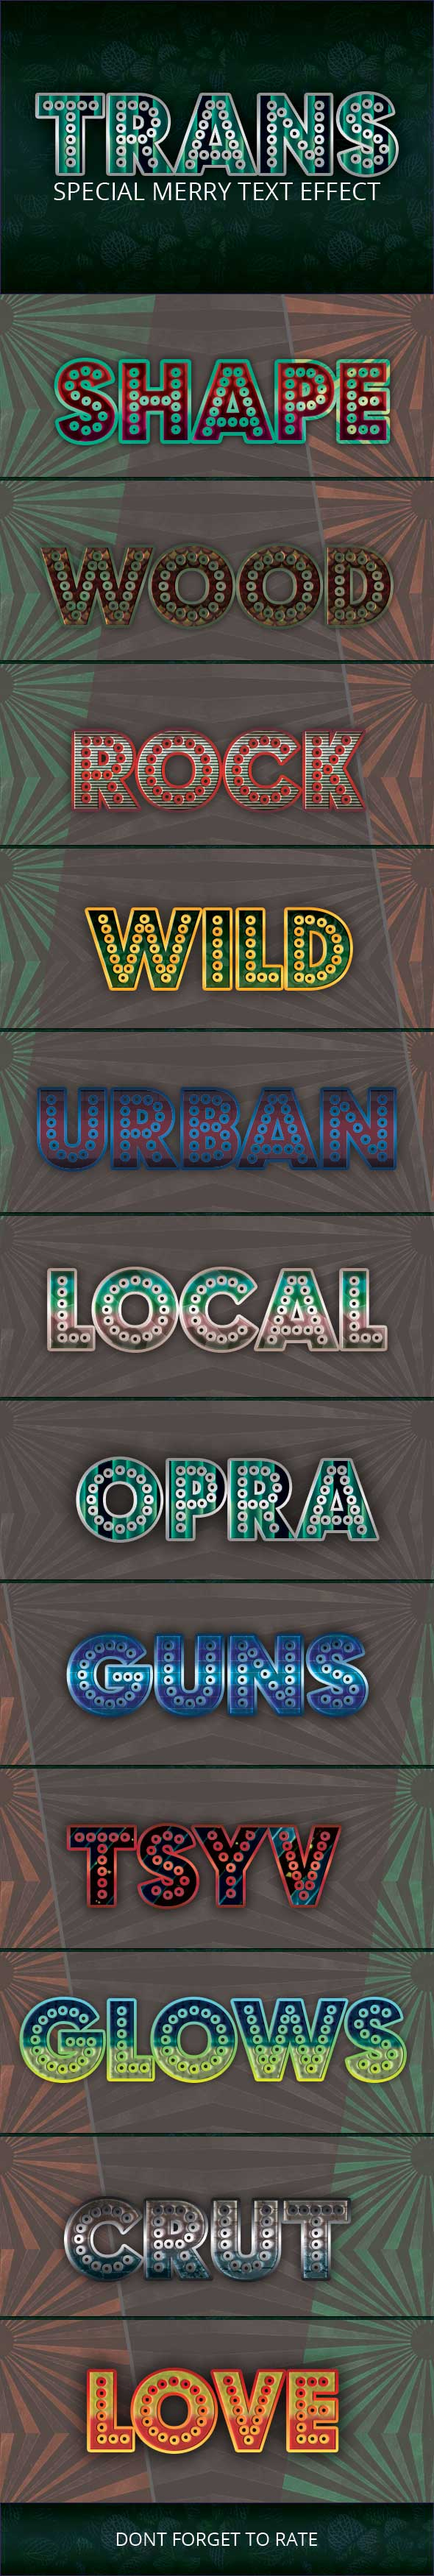 GraphicRiver Trans Merry Special Text Effect 20619822